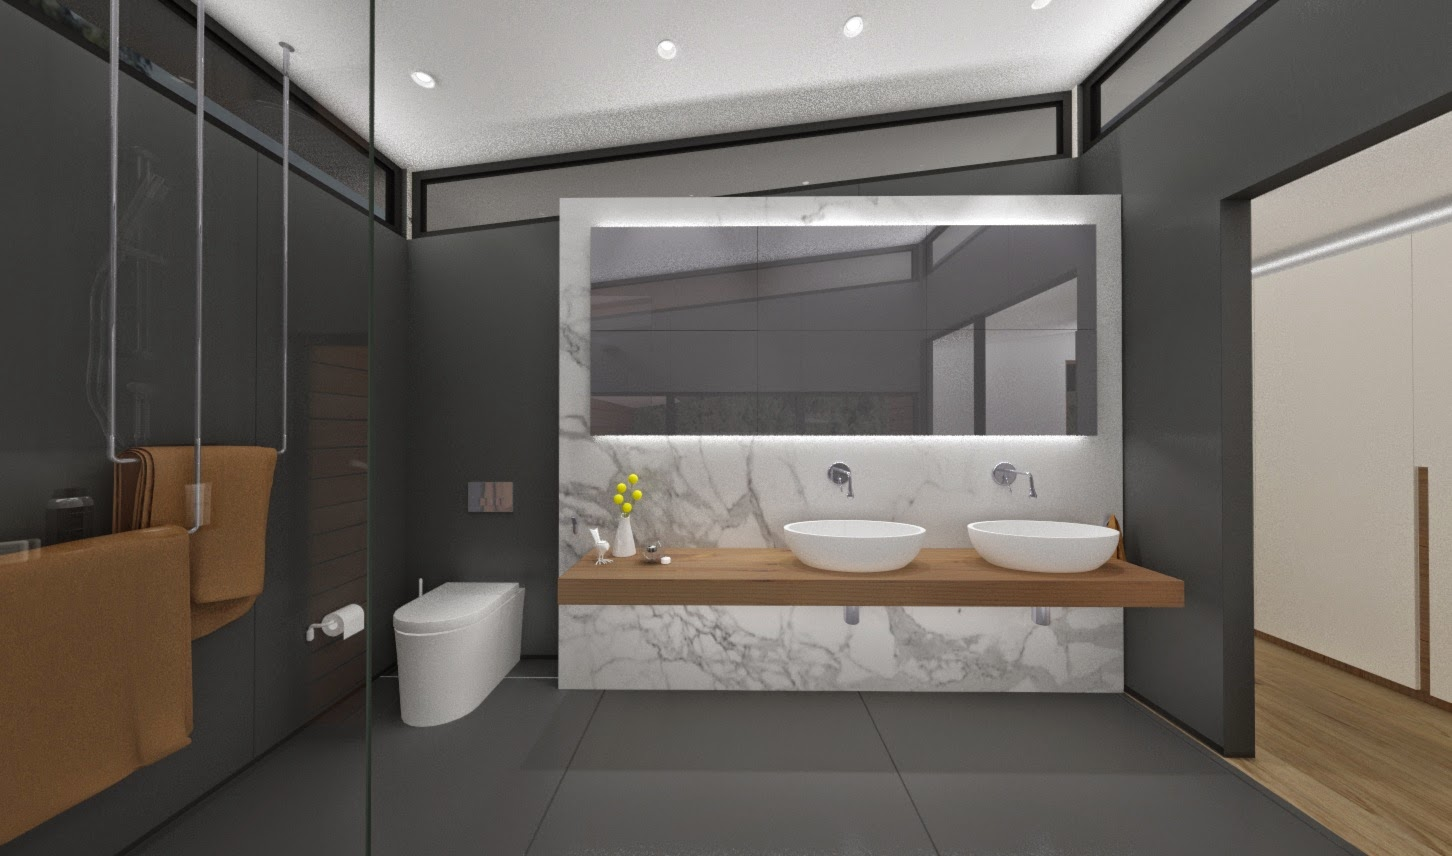 Tremendous Minosa Design Bathroom With A View Bathing With Nature Largest Home Design Picture Inspirations Pitcheantrous